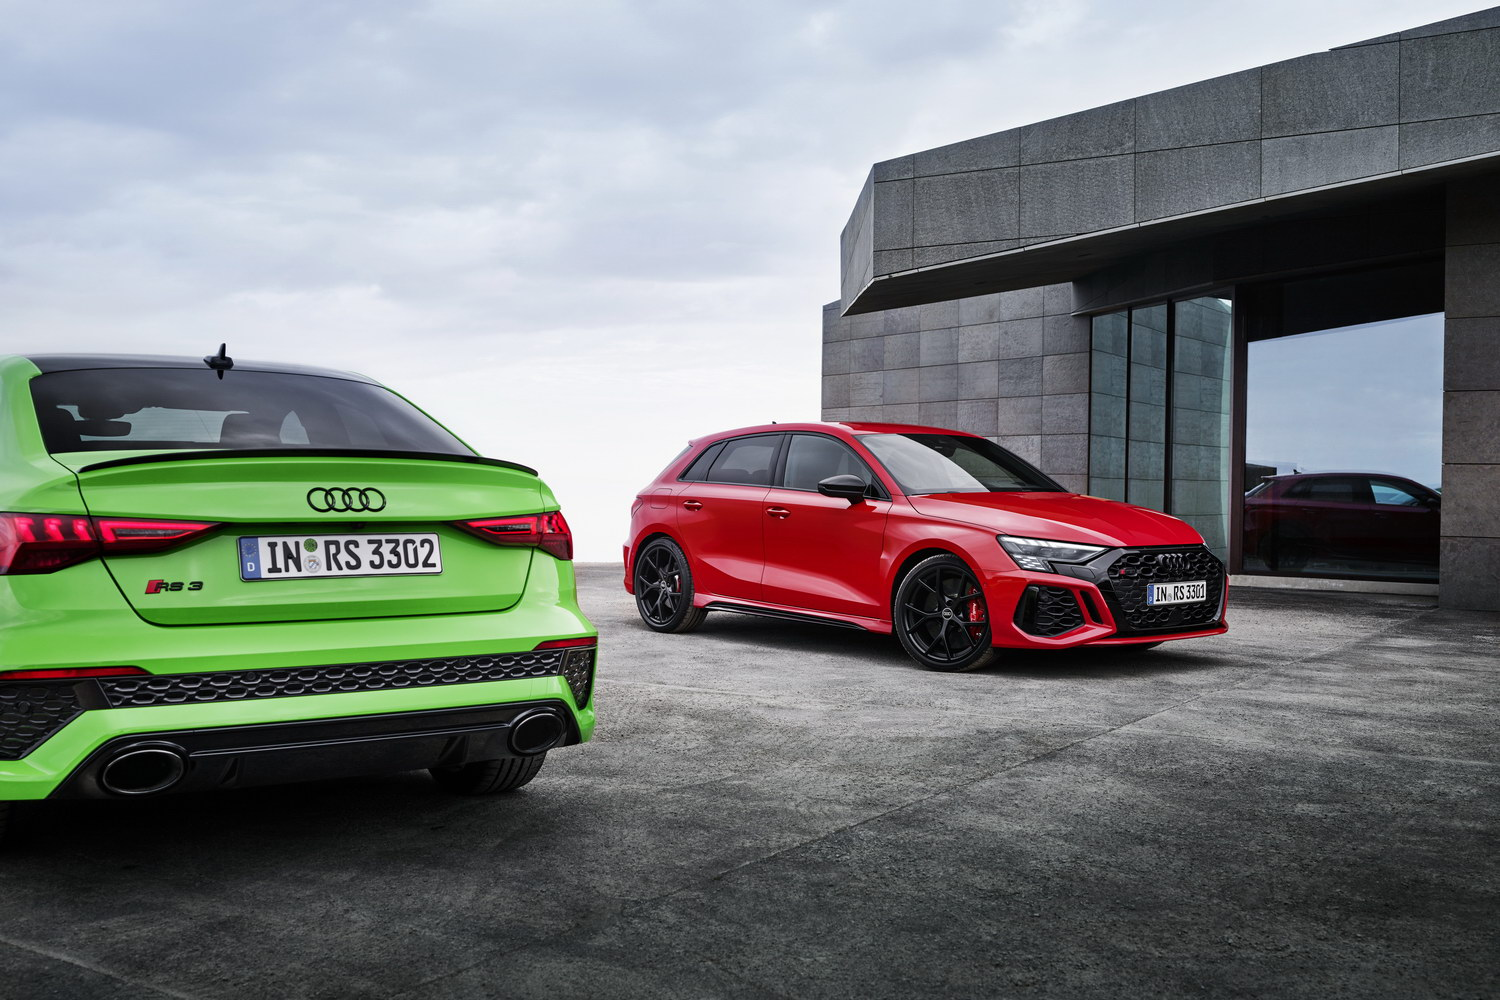 Car News | New Audi RS 3 twins revealed with 400hp | CompleteCar.ie